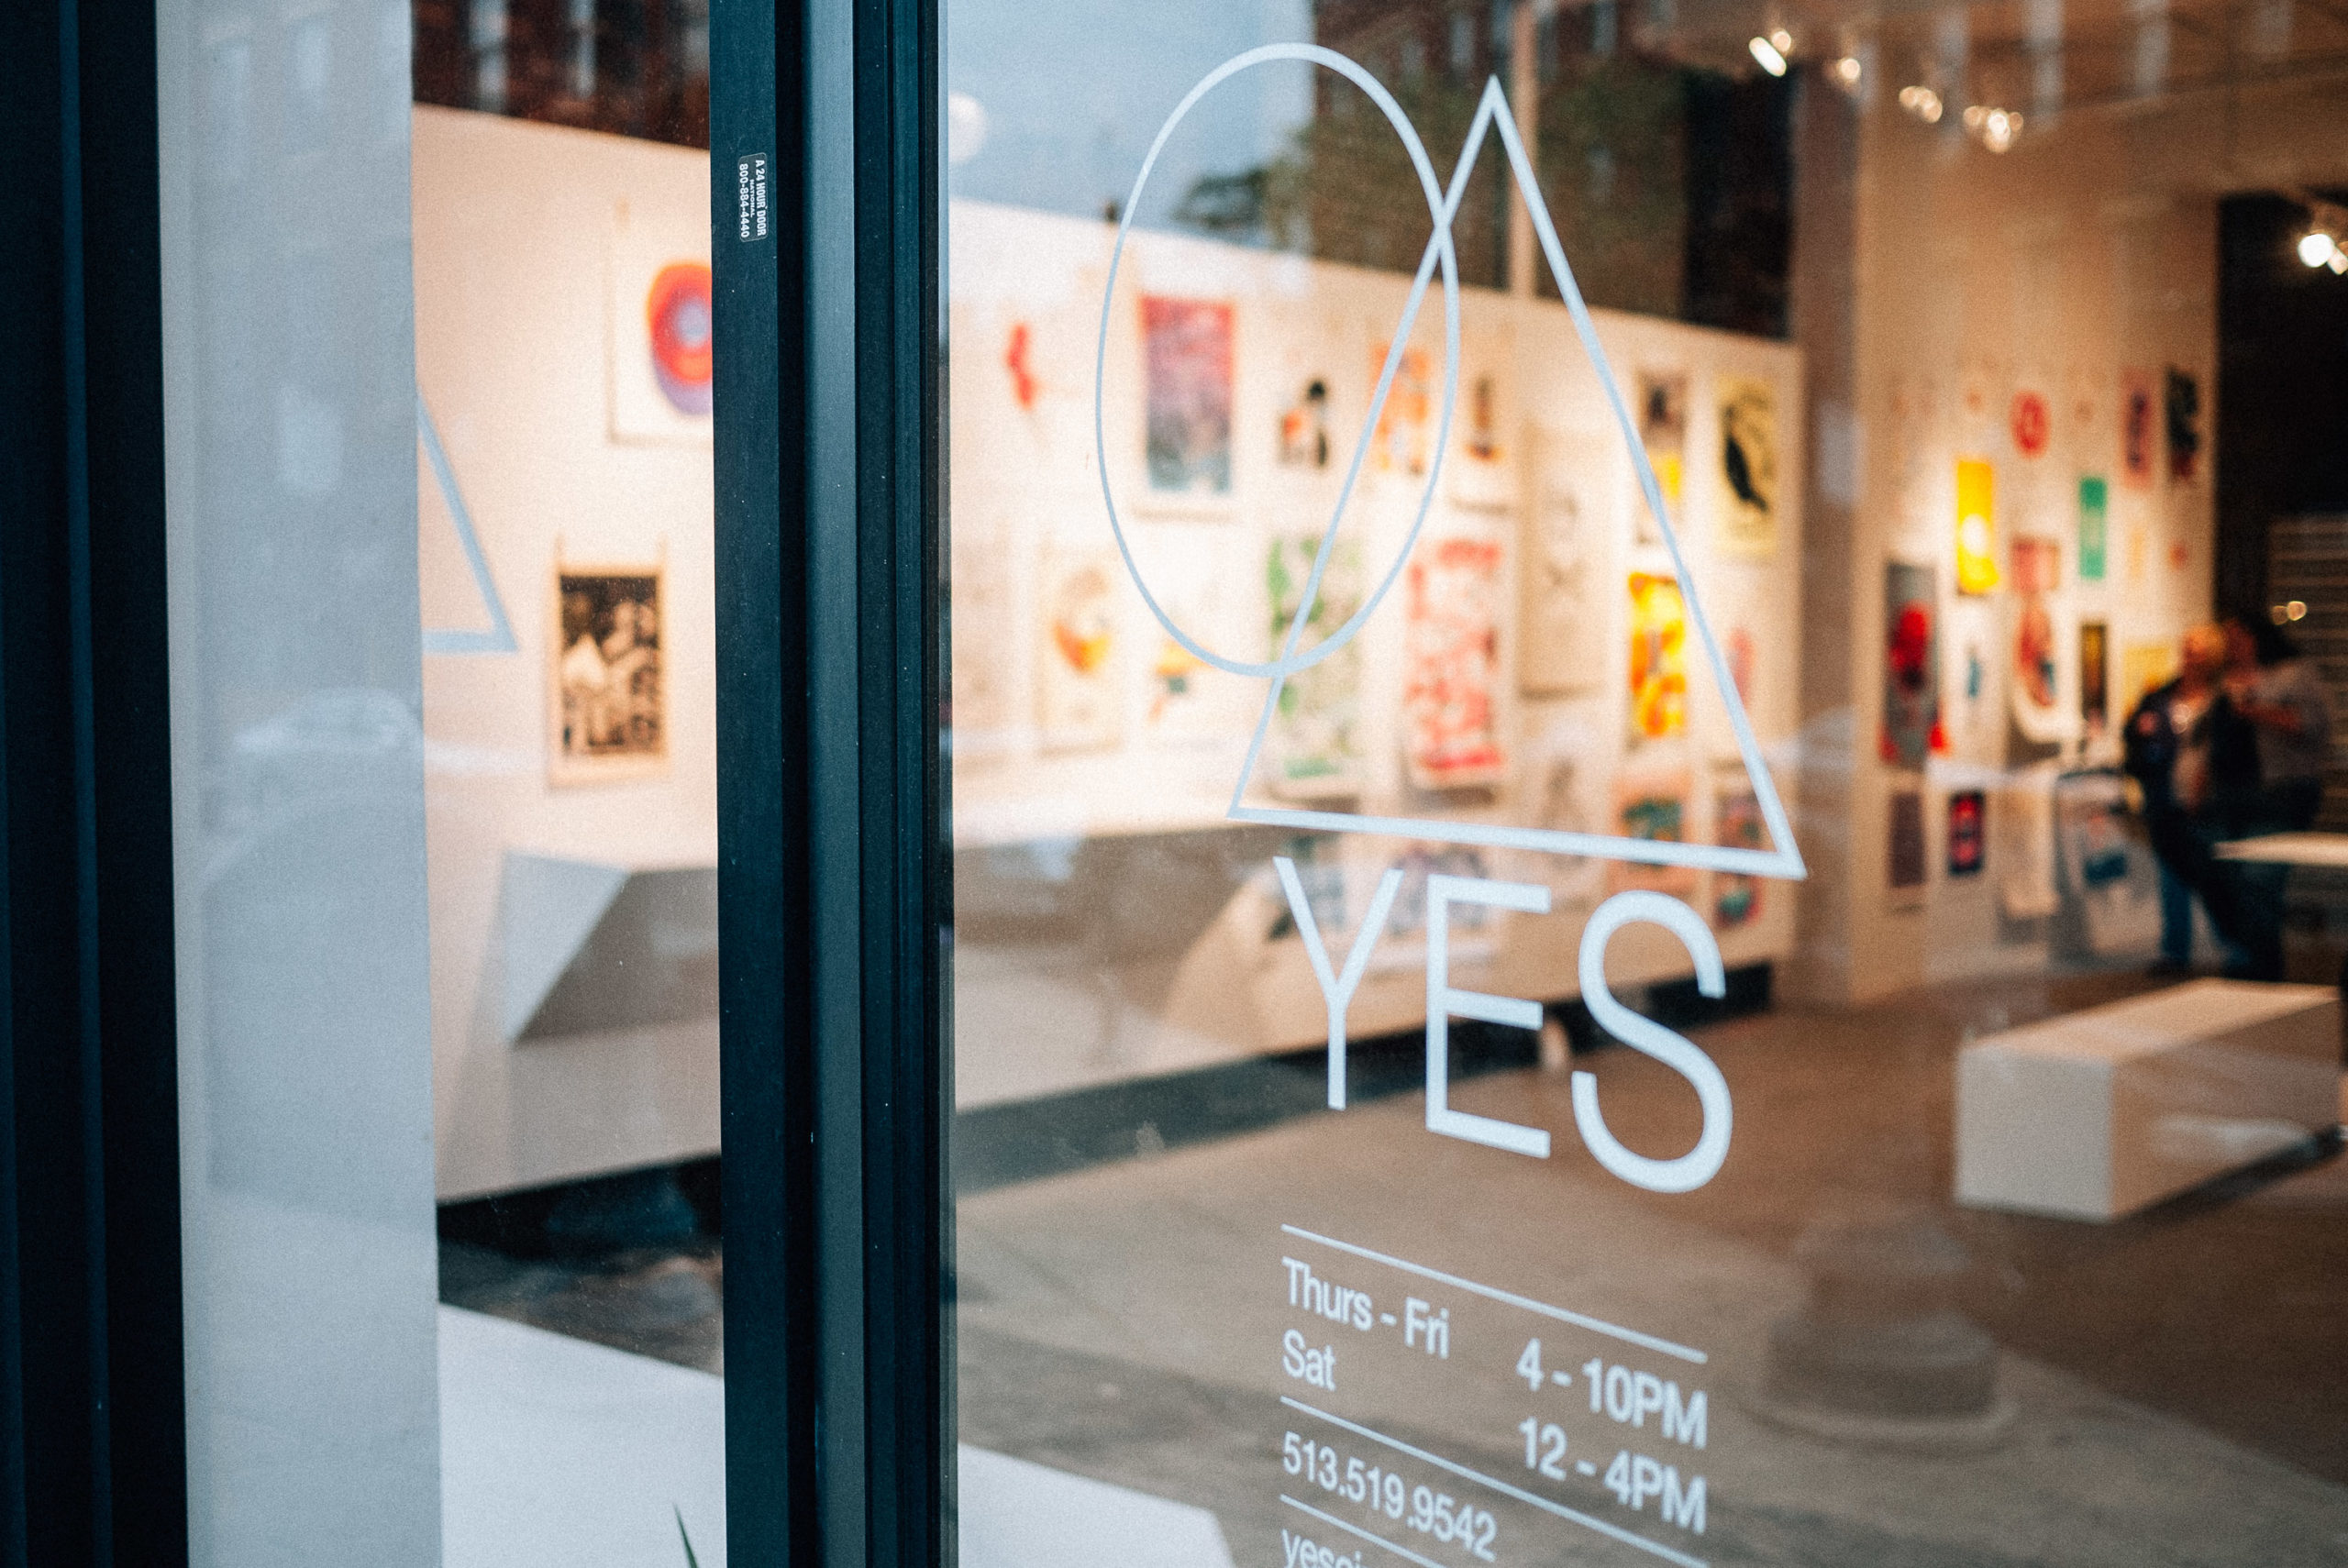 A gallery with the word YES on the door with a circle and triangle